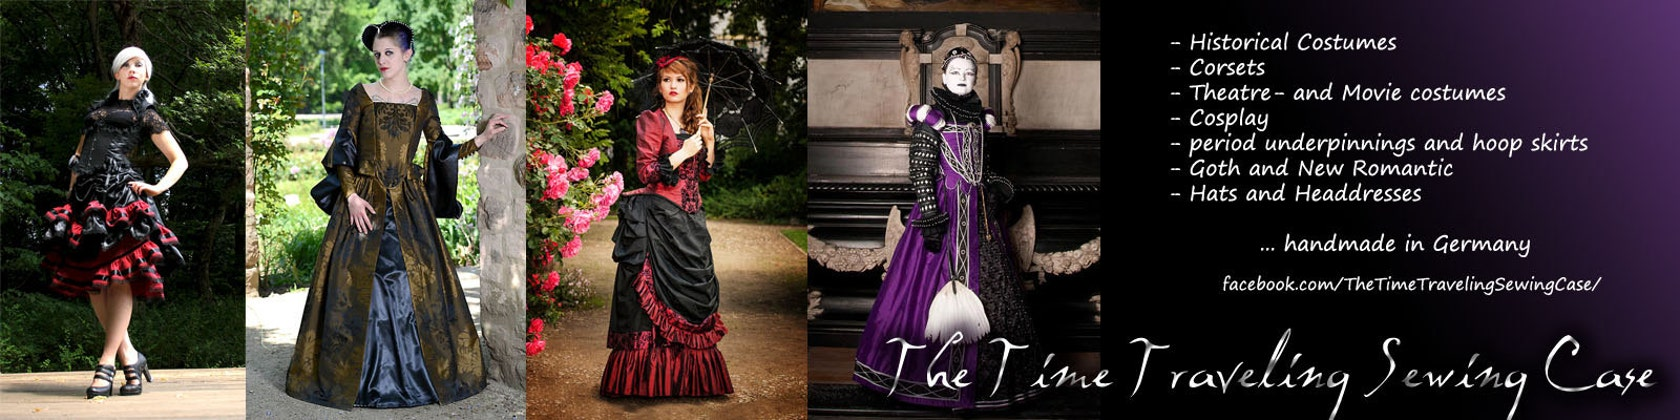 Gothic historical clothes Lolita corsets by TimeTravelingTailor